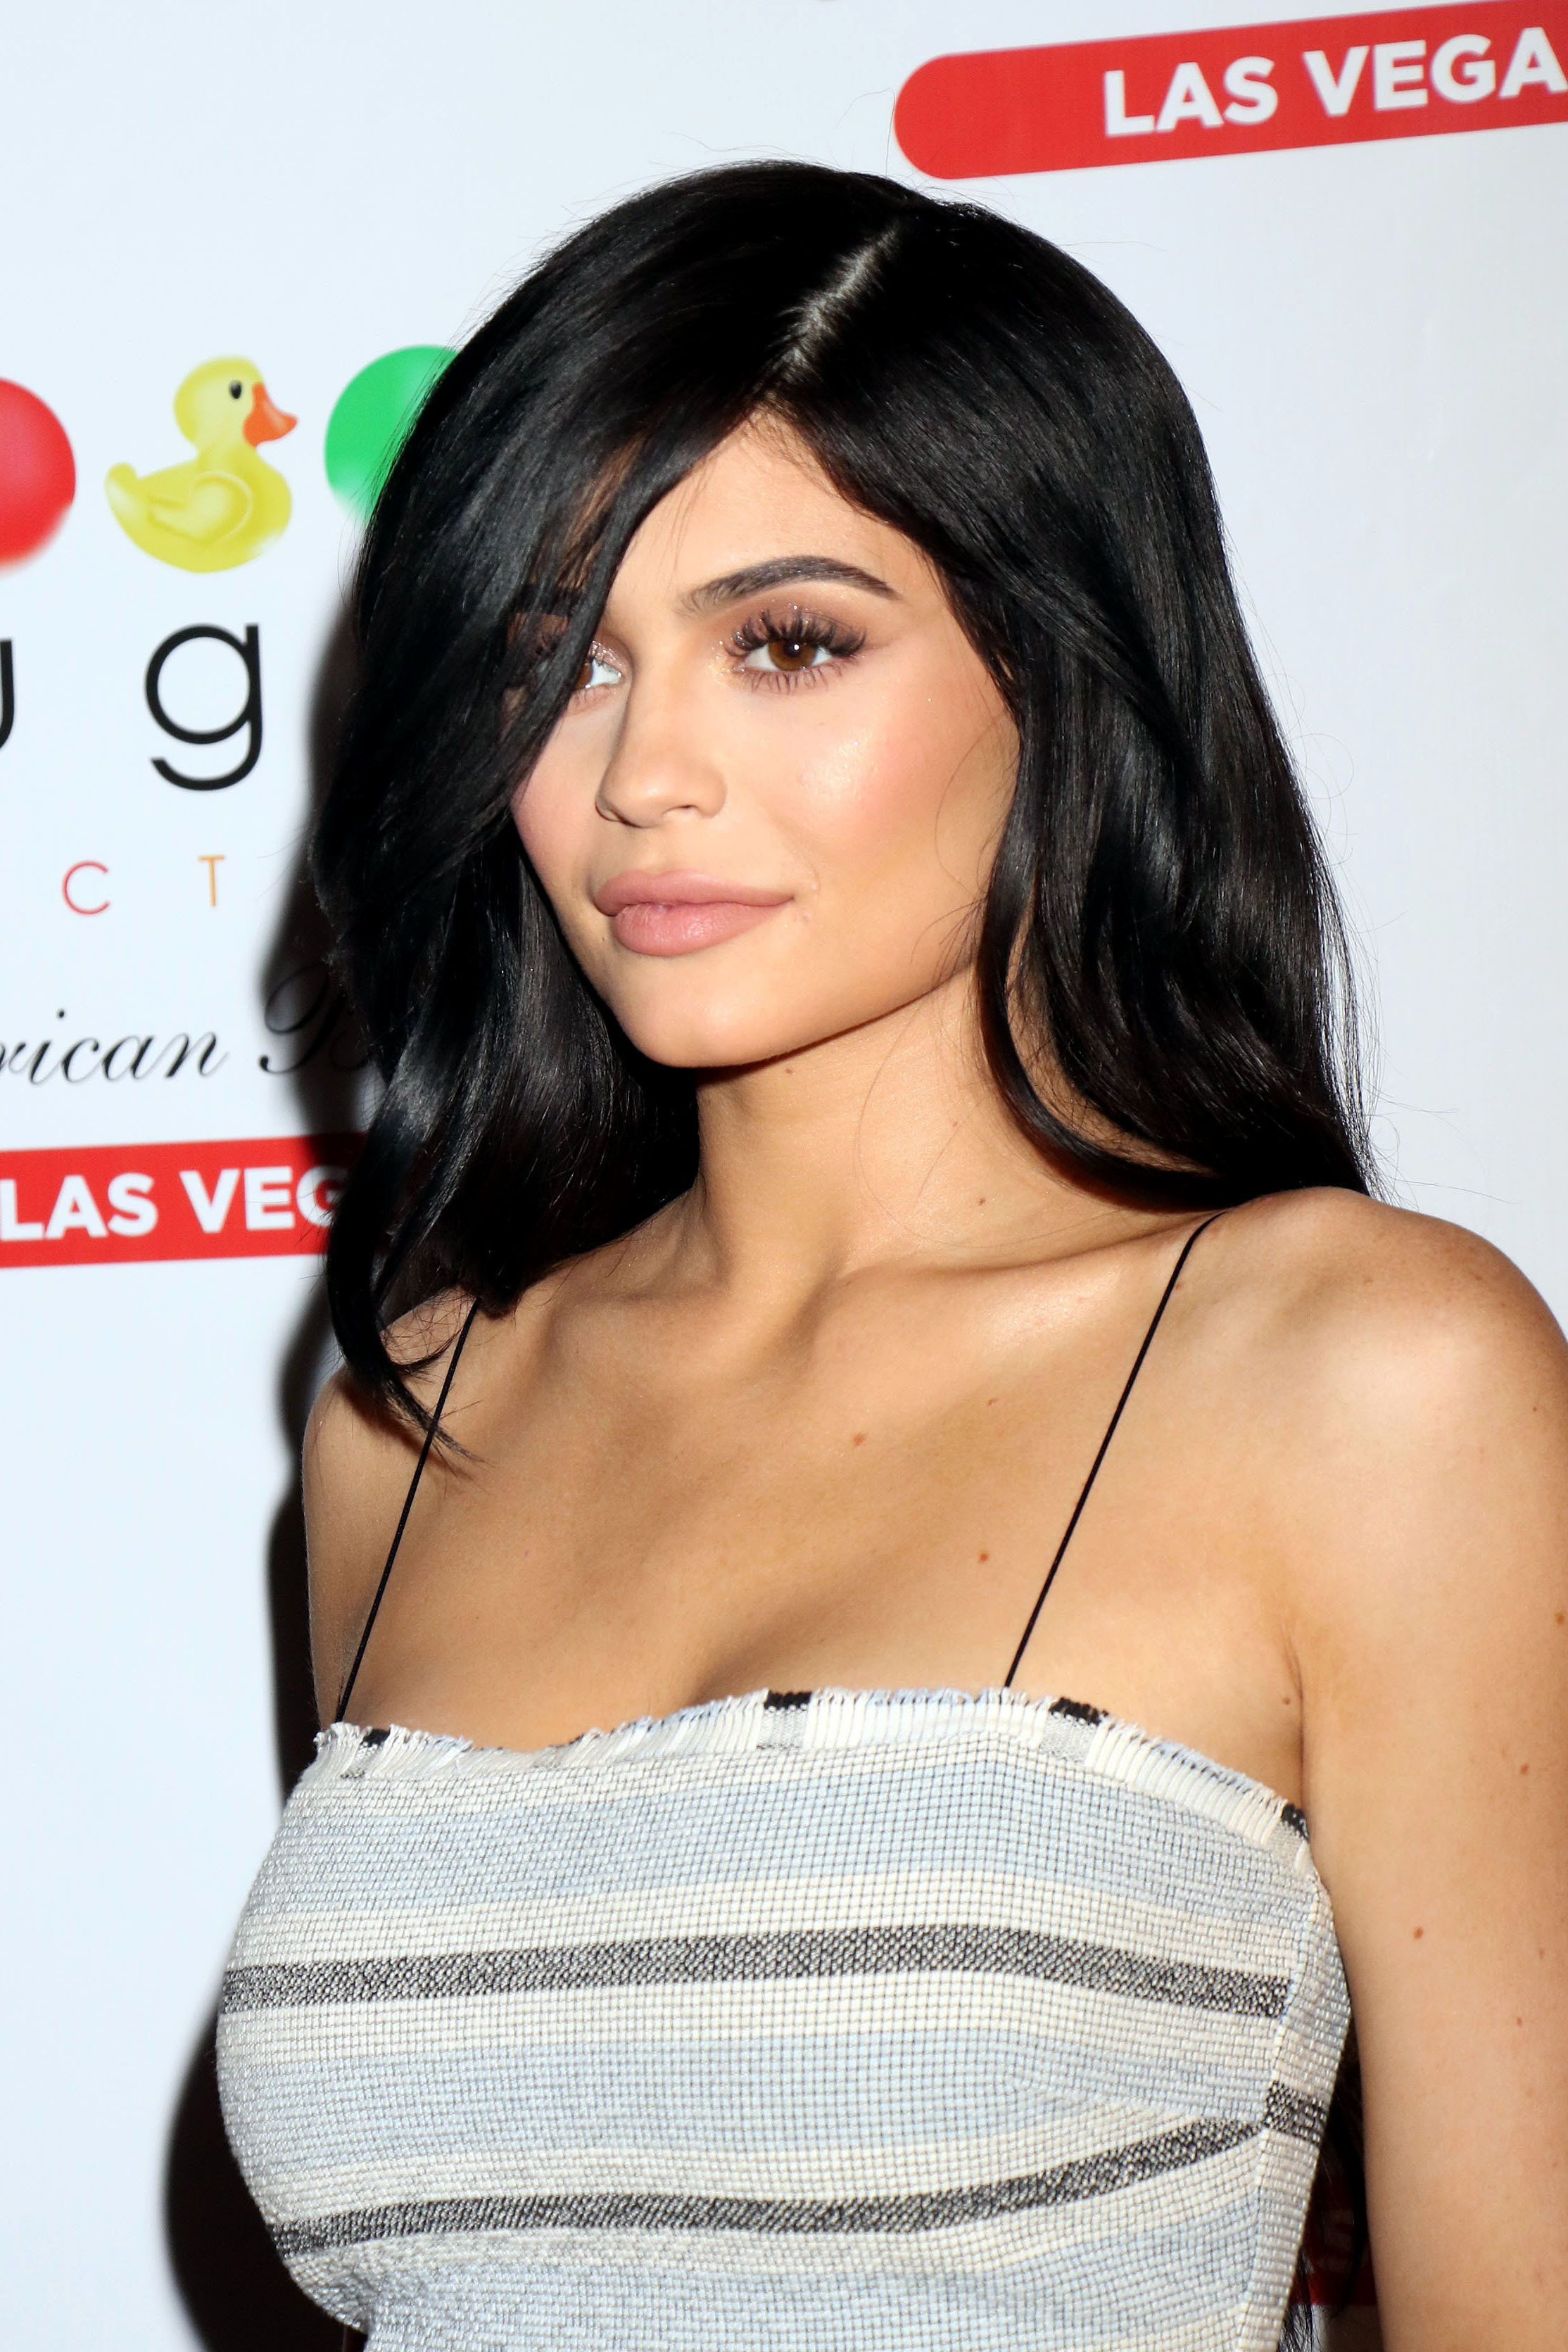 Kylie Jenner Continues The Grand Opening Celebration of Sugar Factory American Brasserie at Fashion Show Mall in Las Vegas, USA